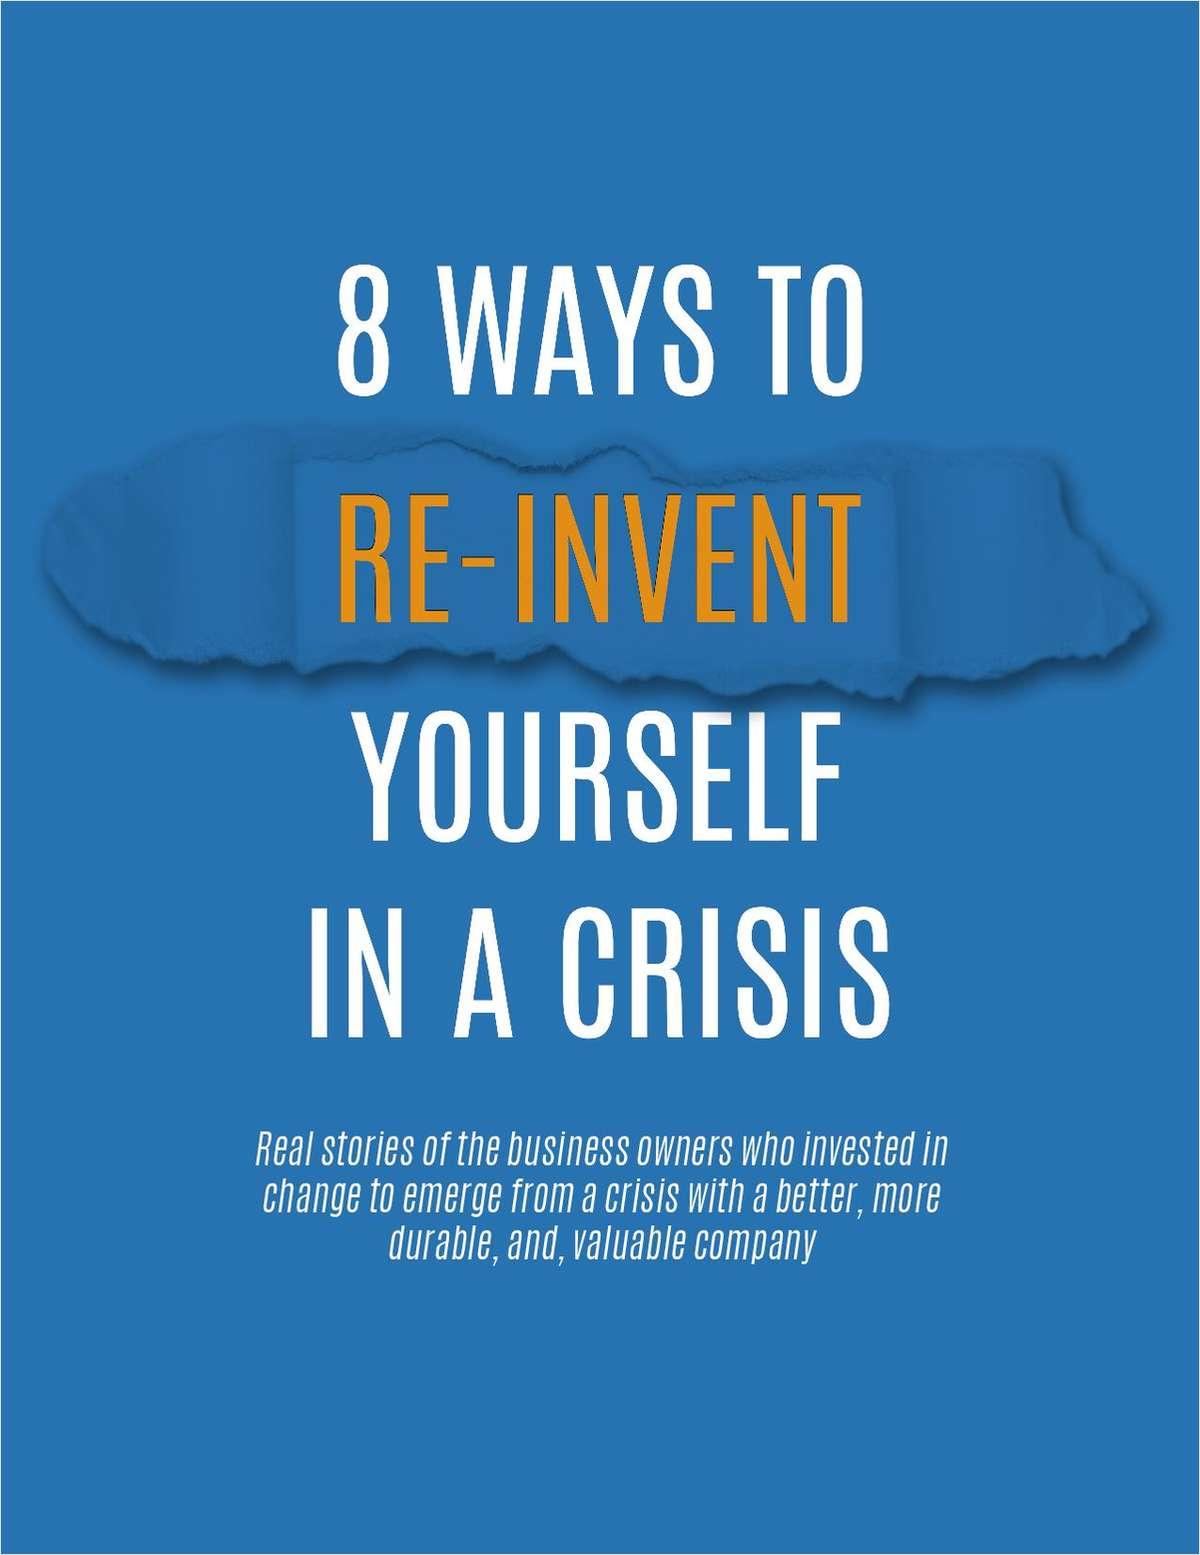 8 Ways to Reinvent Yourself in a Crisis